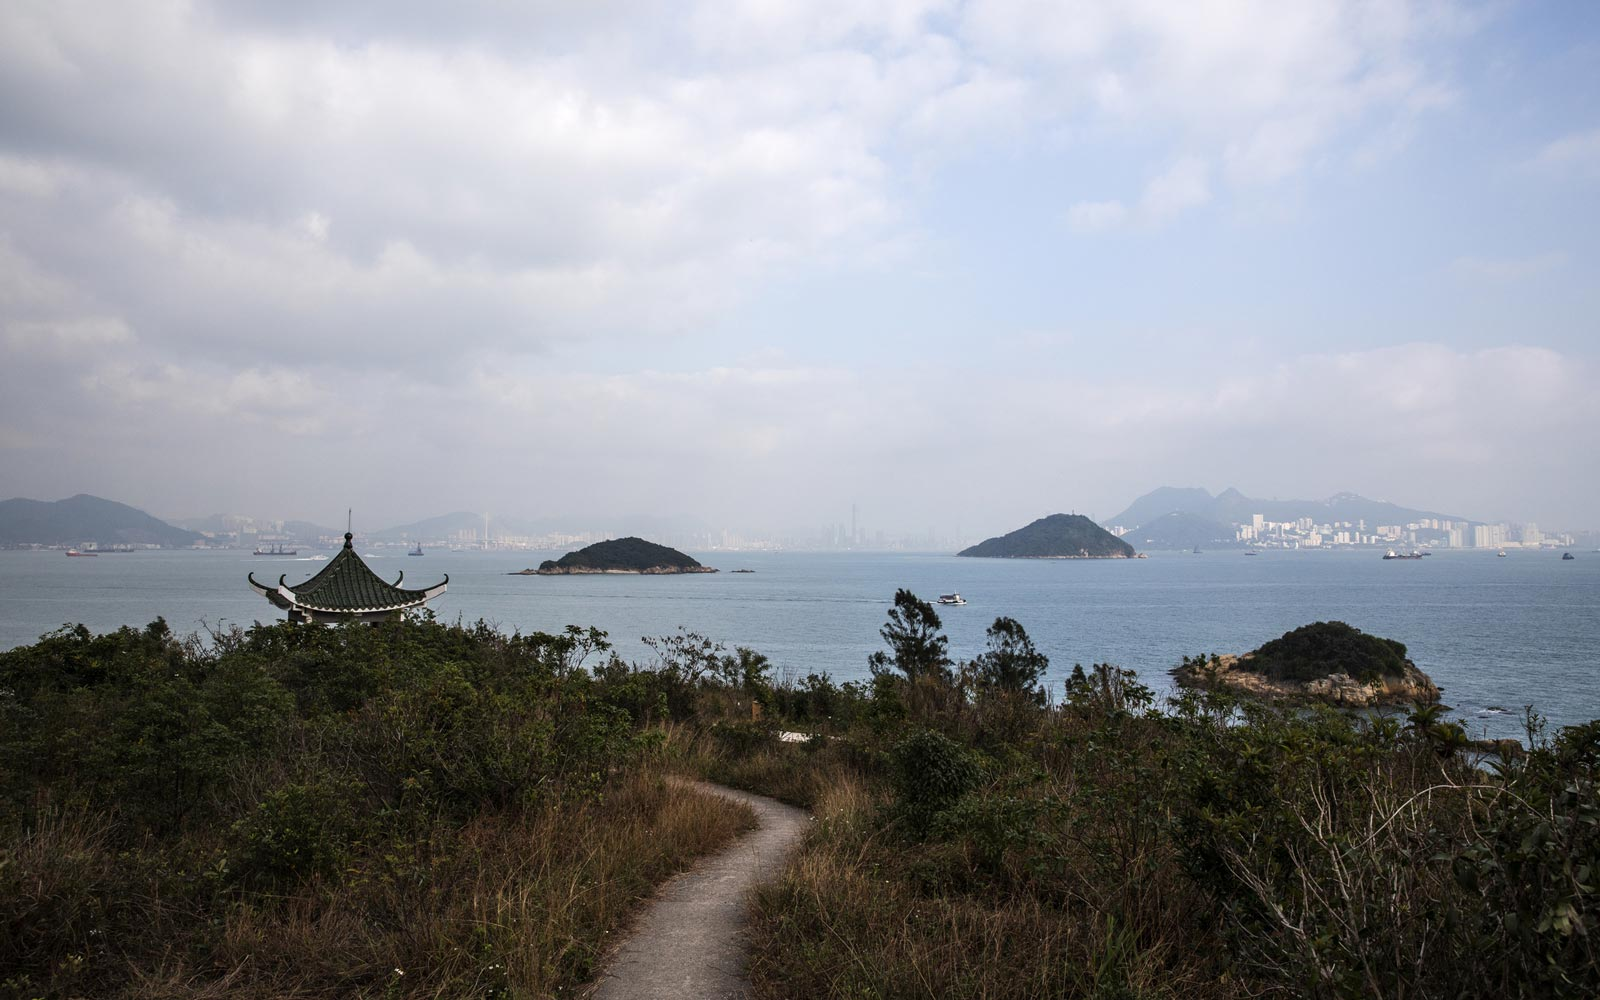 Hong Kong Wants to Build Artificial Islands to Solve Its Housing Crisis